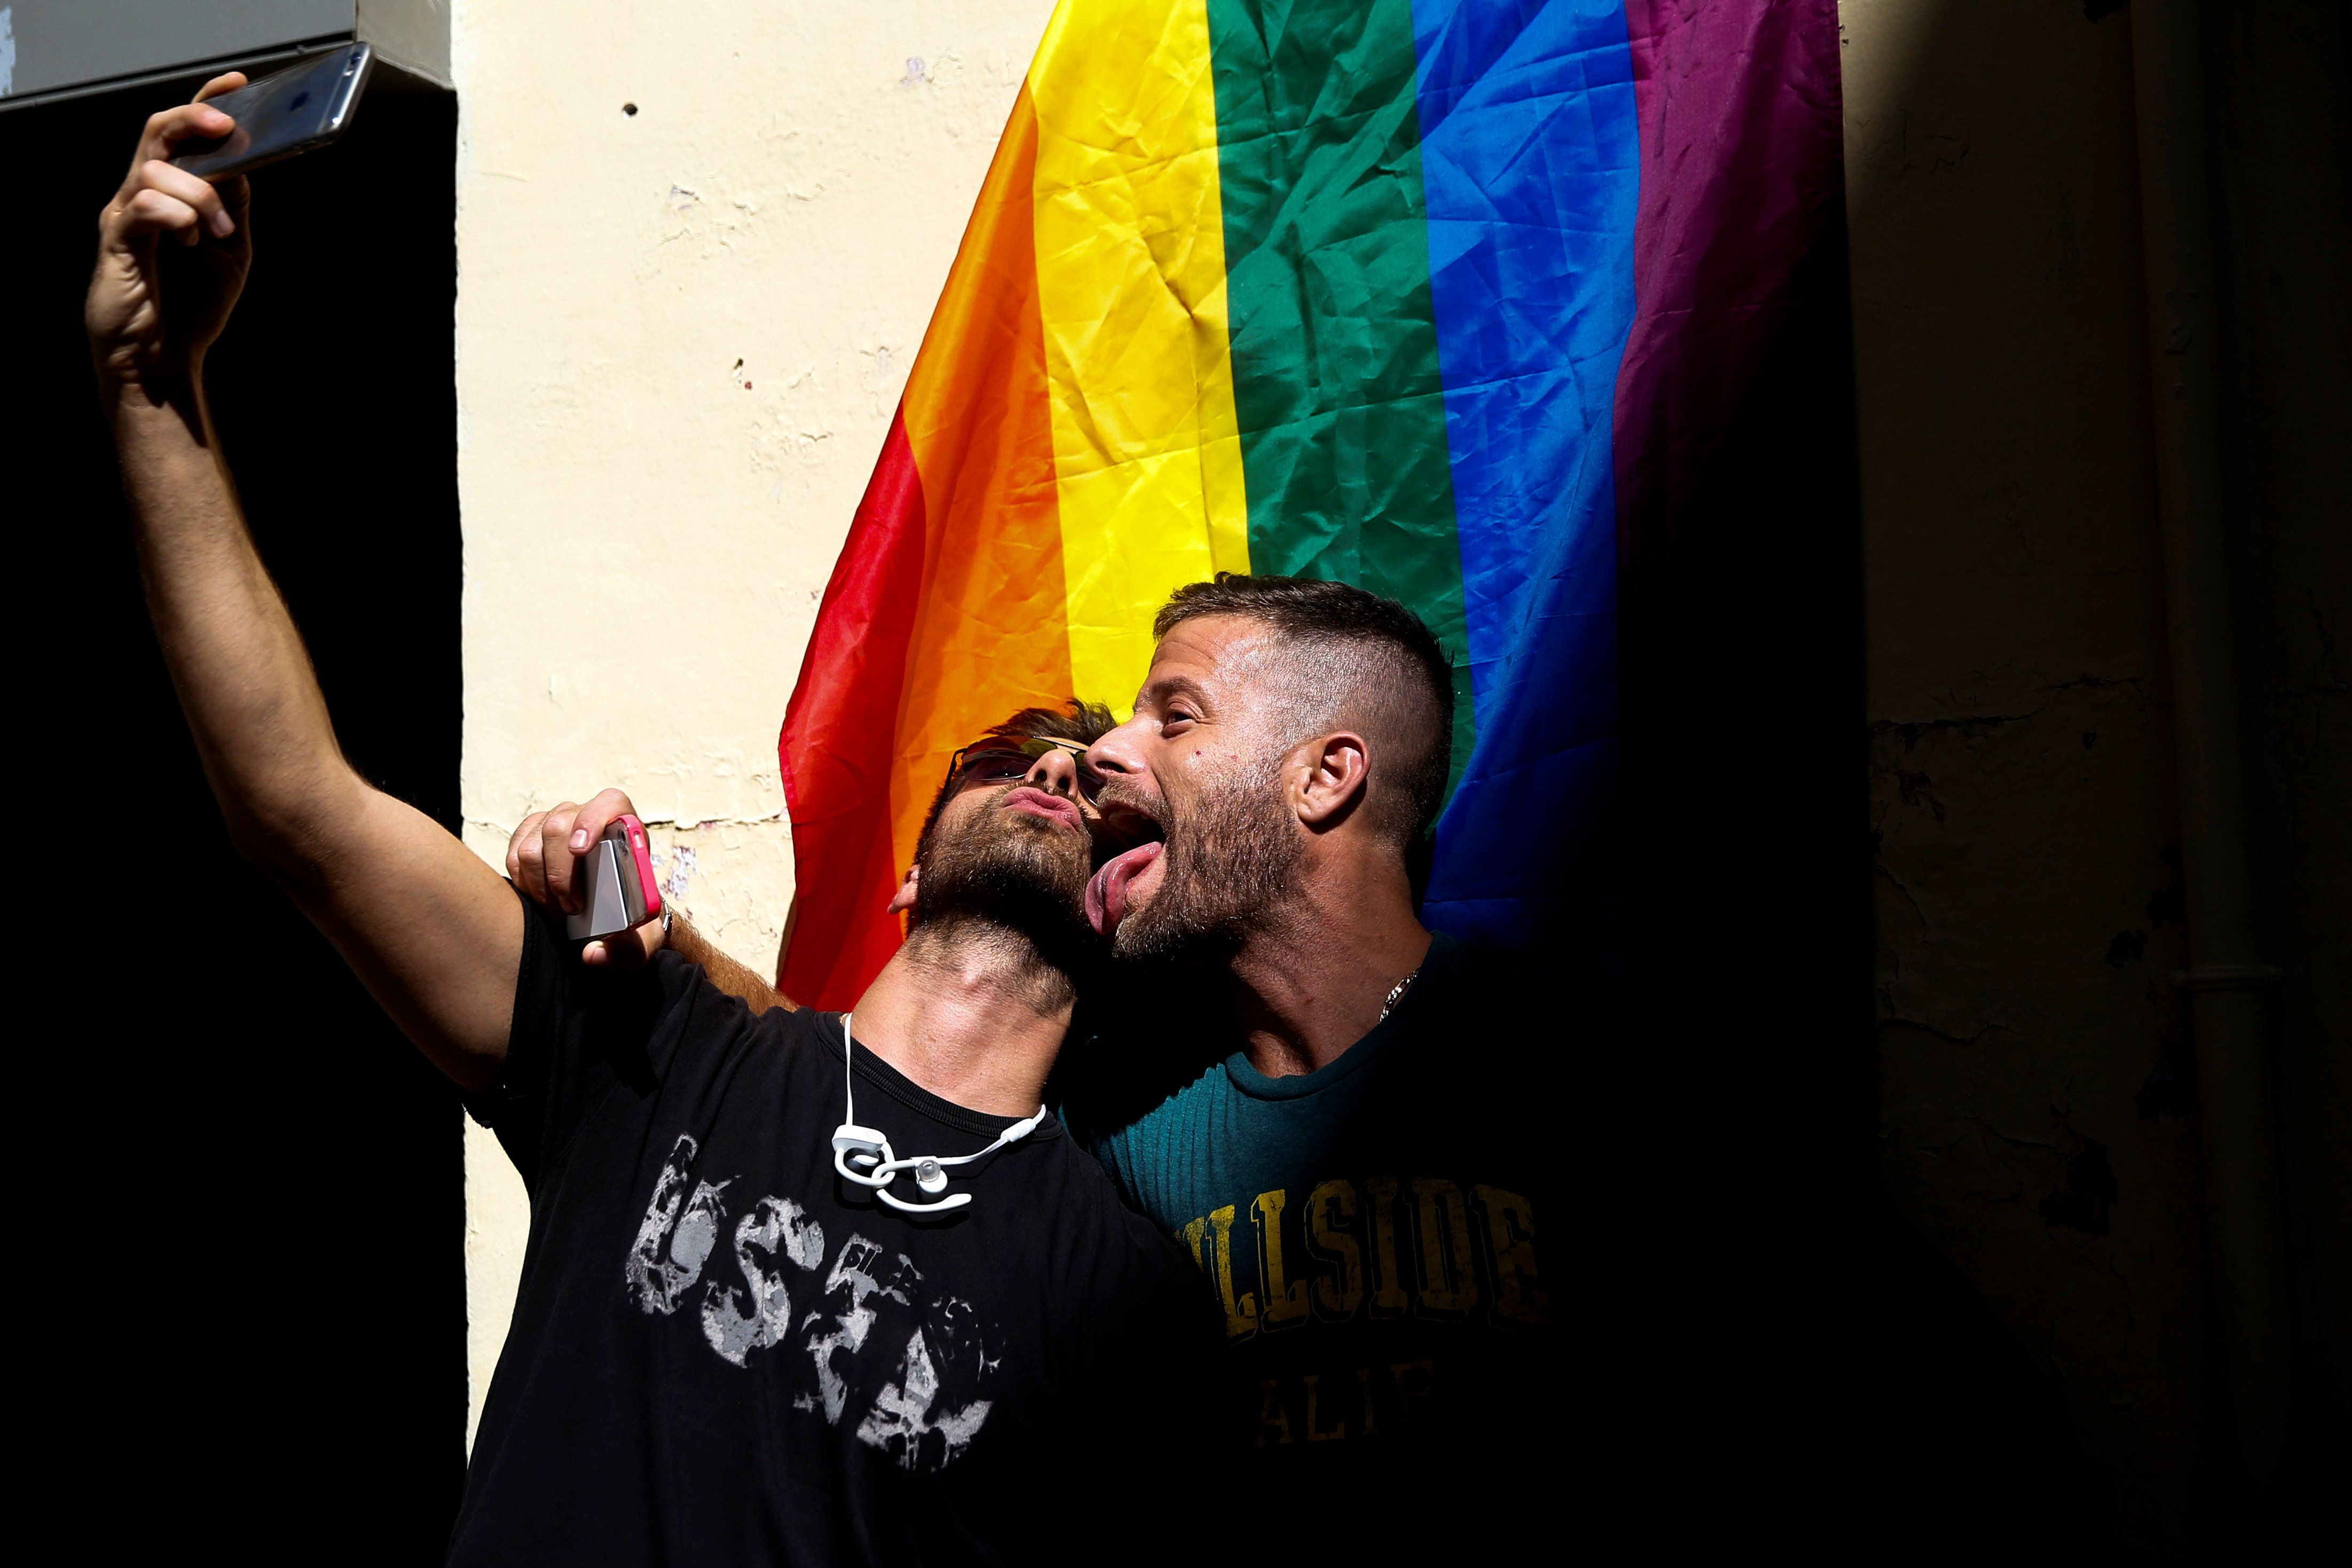 Two men take a selfie by a rainbow flag before the annual race on high heels during Gay Pride celebrations in the quarter of Chueca in Madrid, Spain, June 30, 2016. REUTERS/Susana Vera